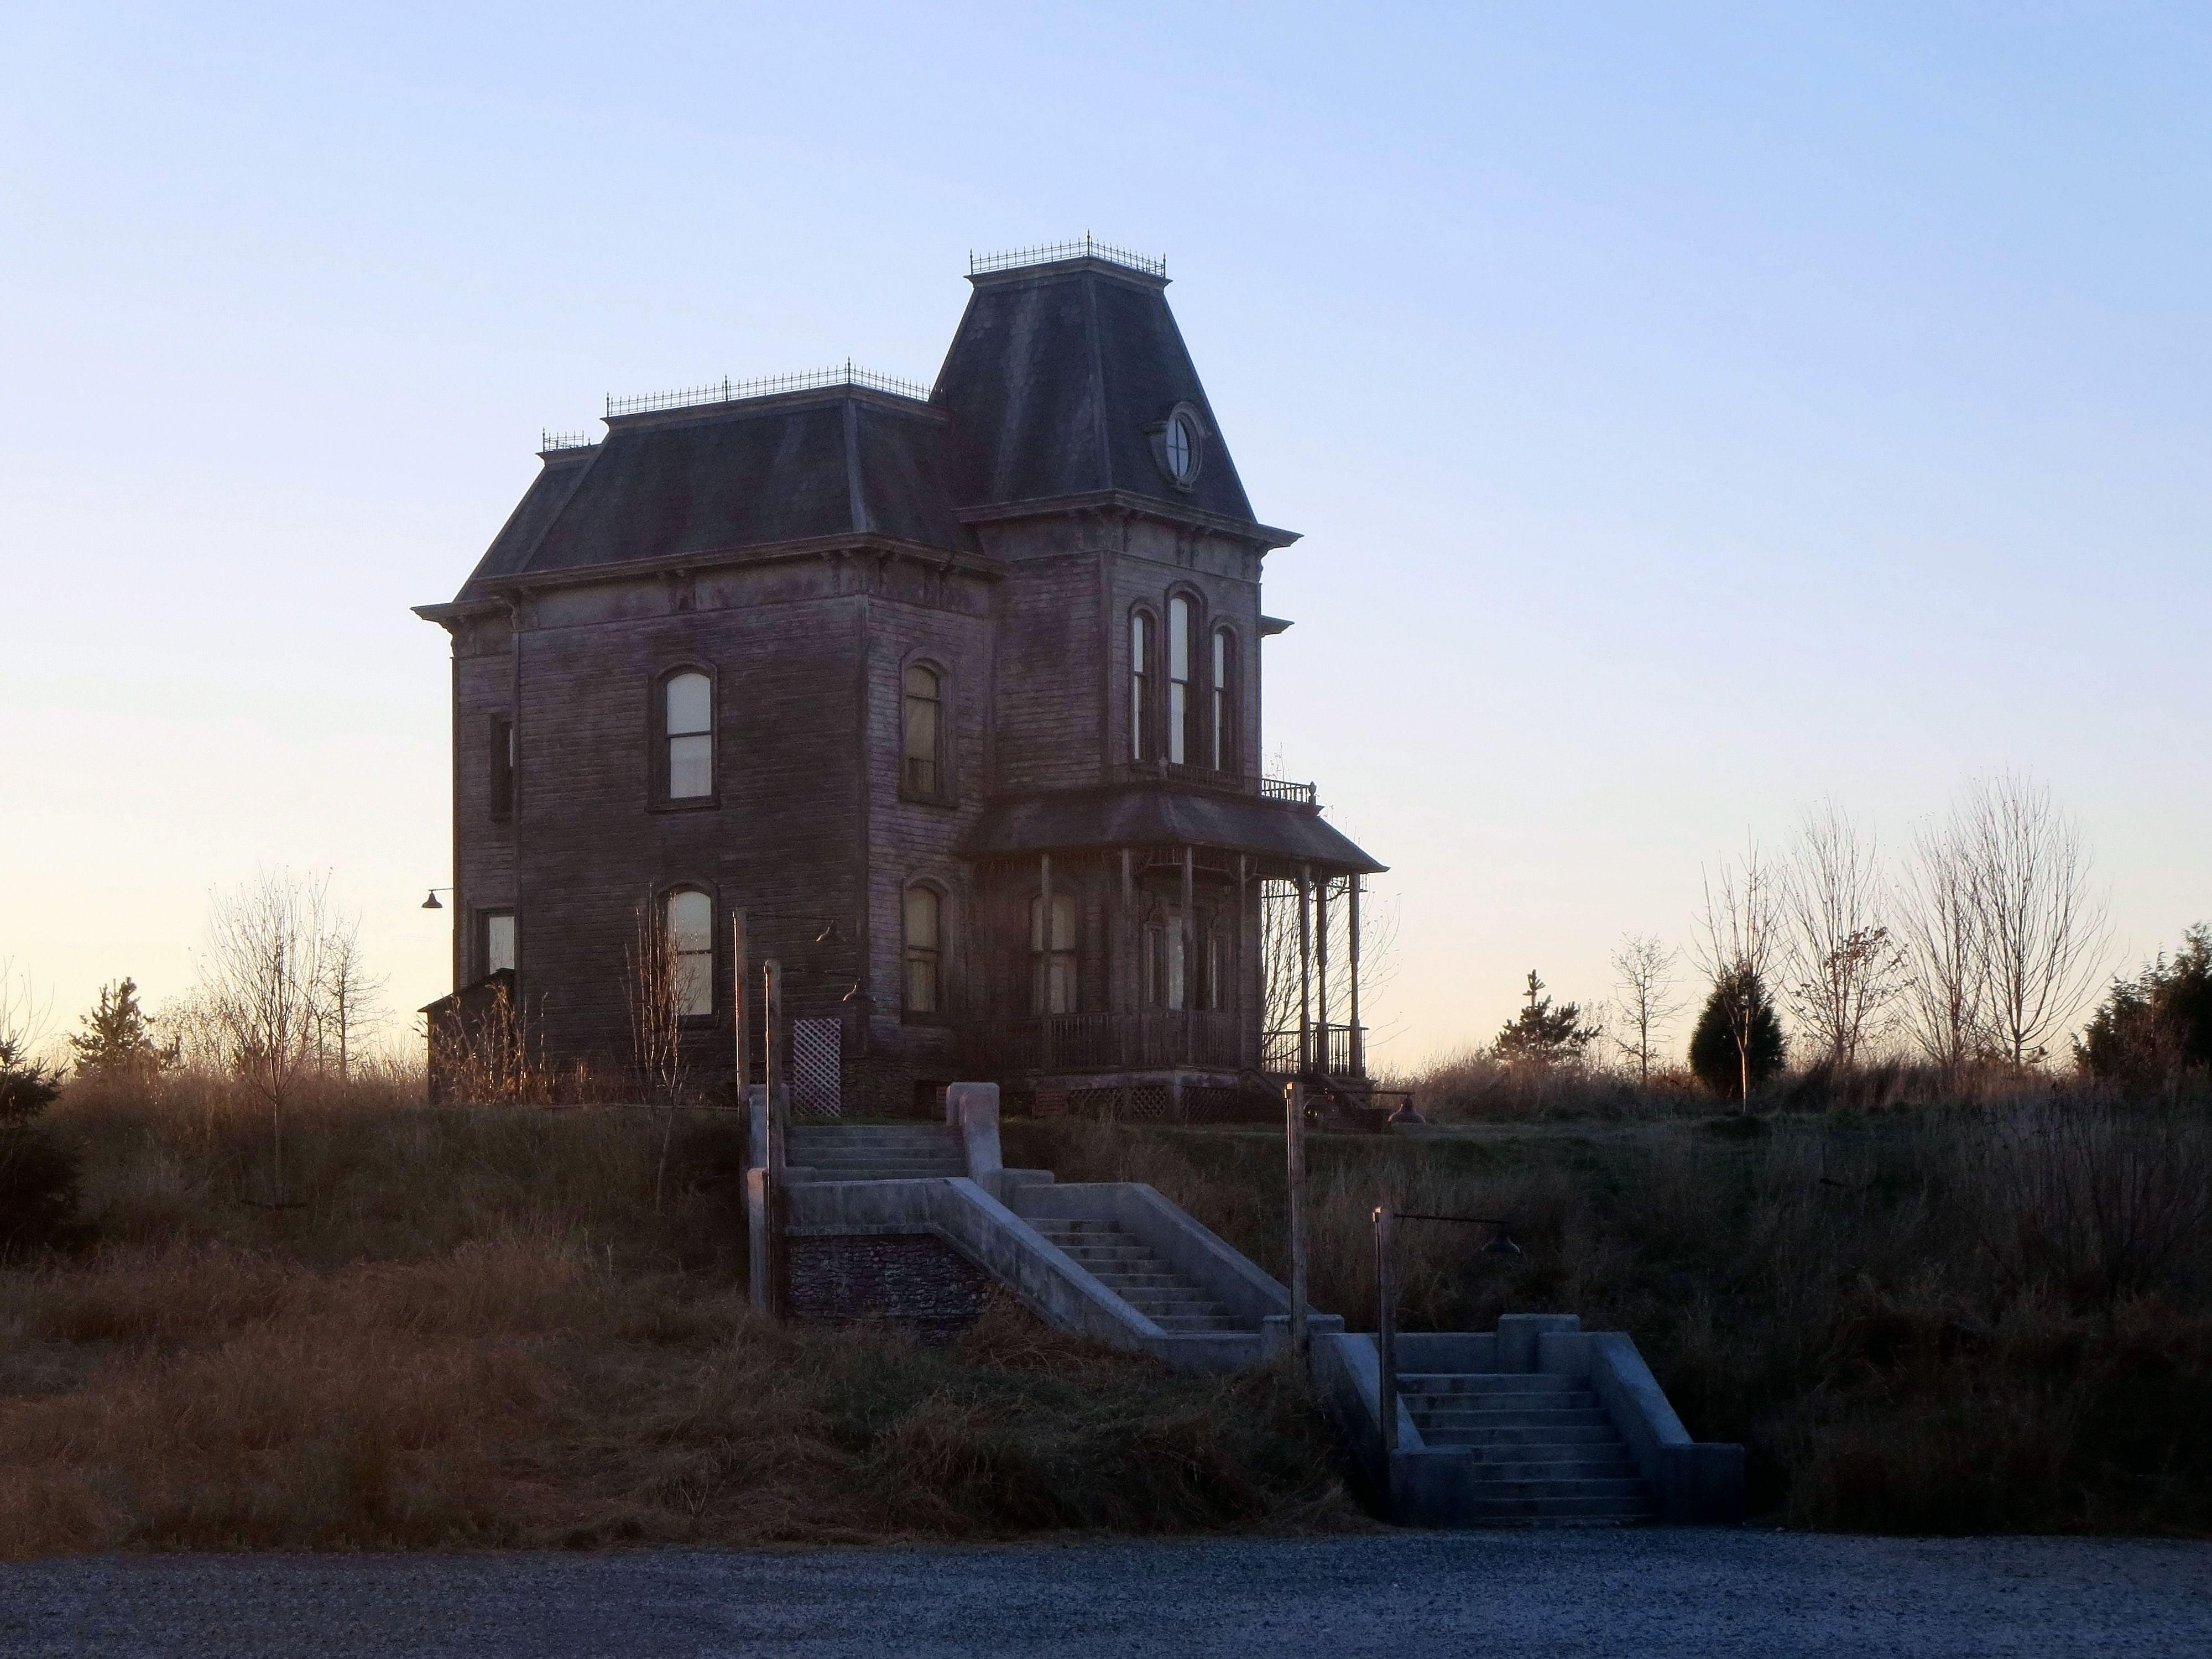 iPhone 6 Bates Motel Wallpapers : BatesMotel